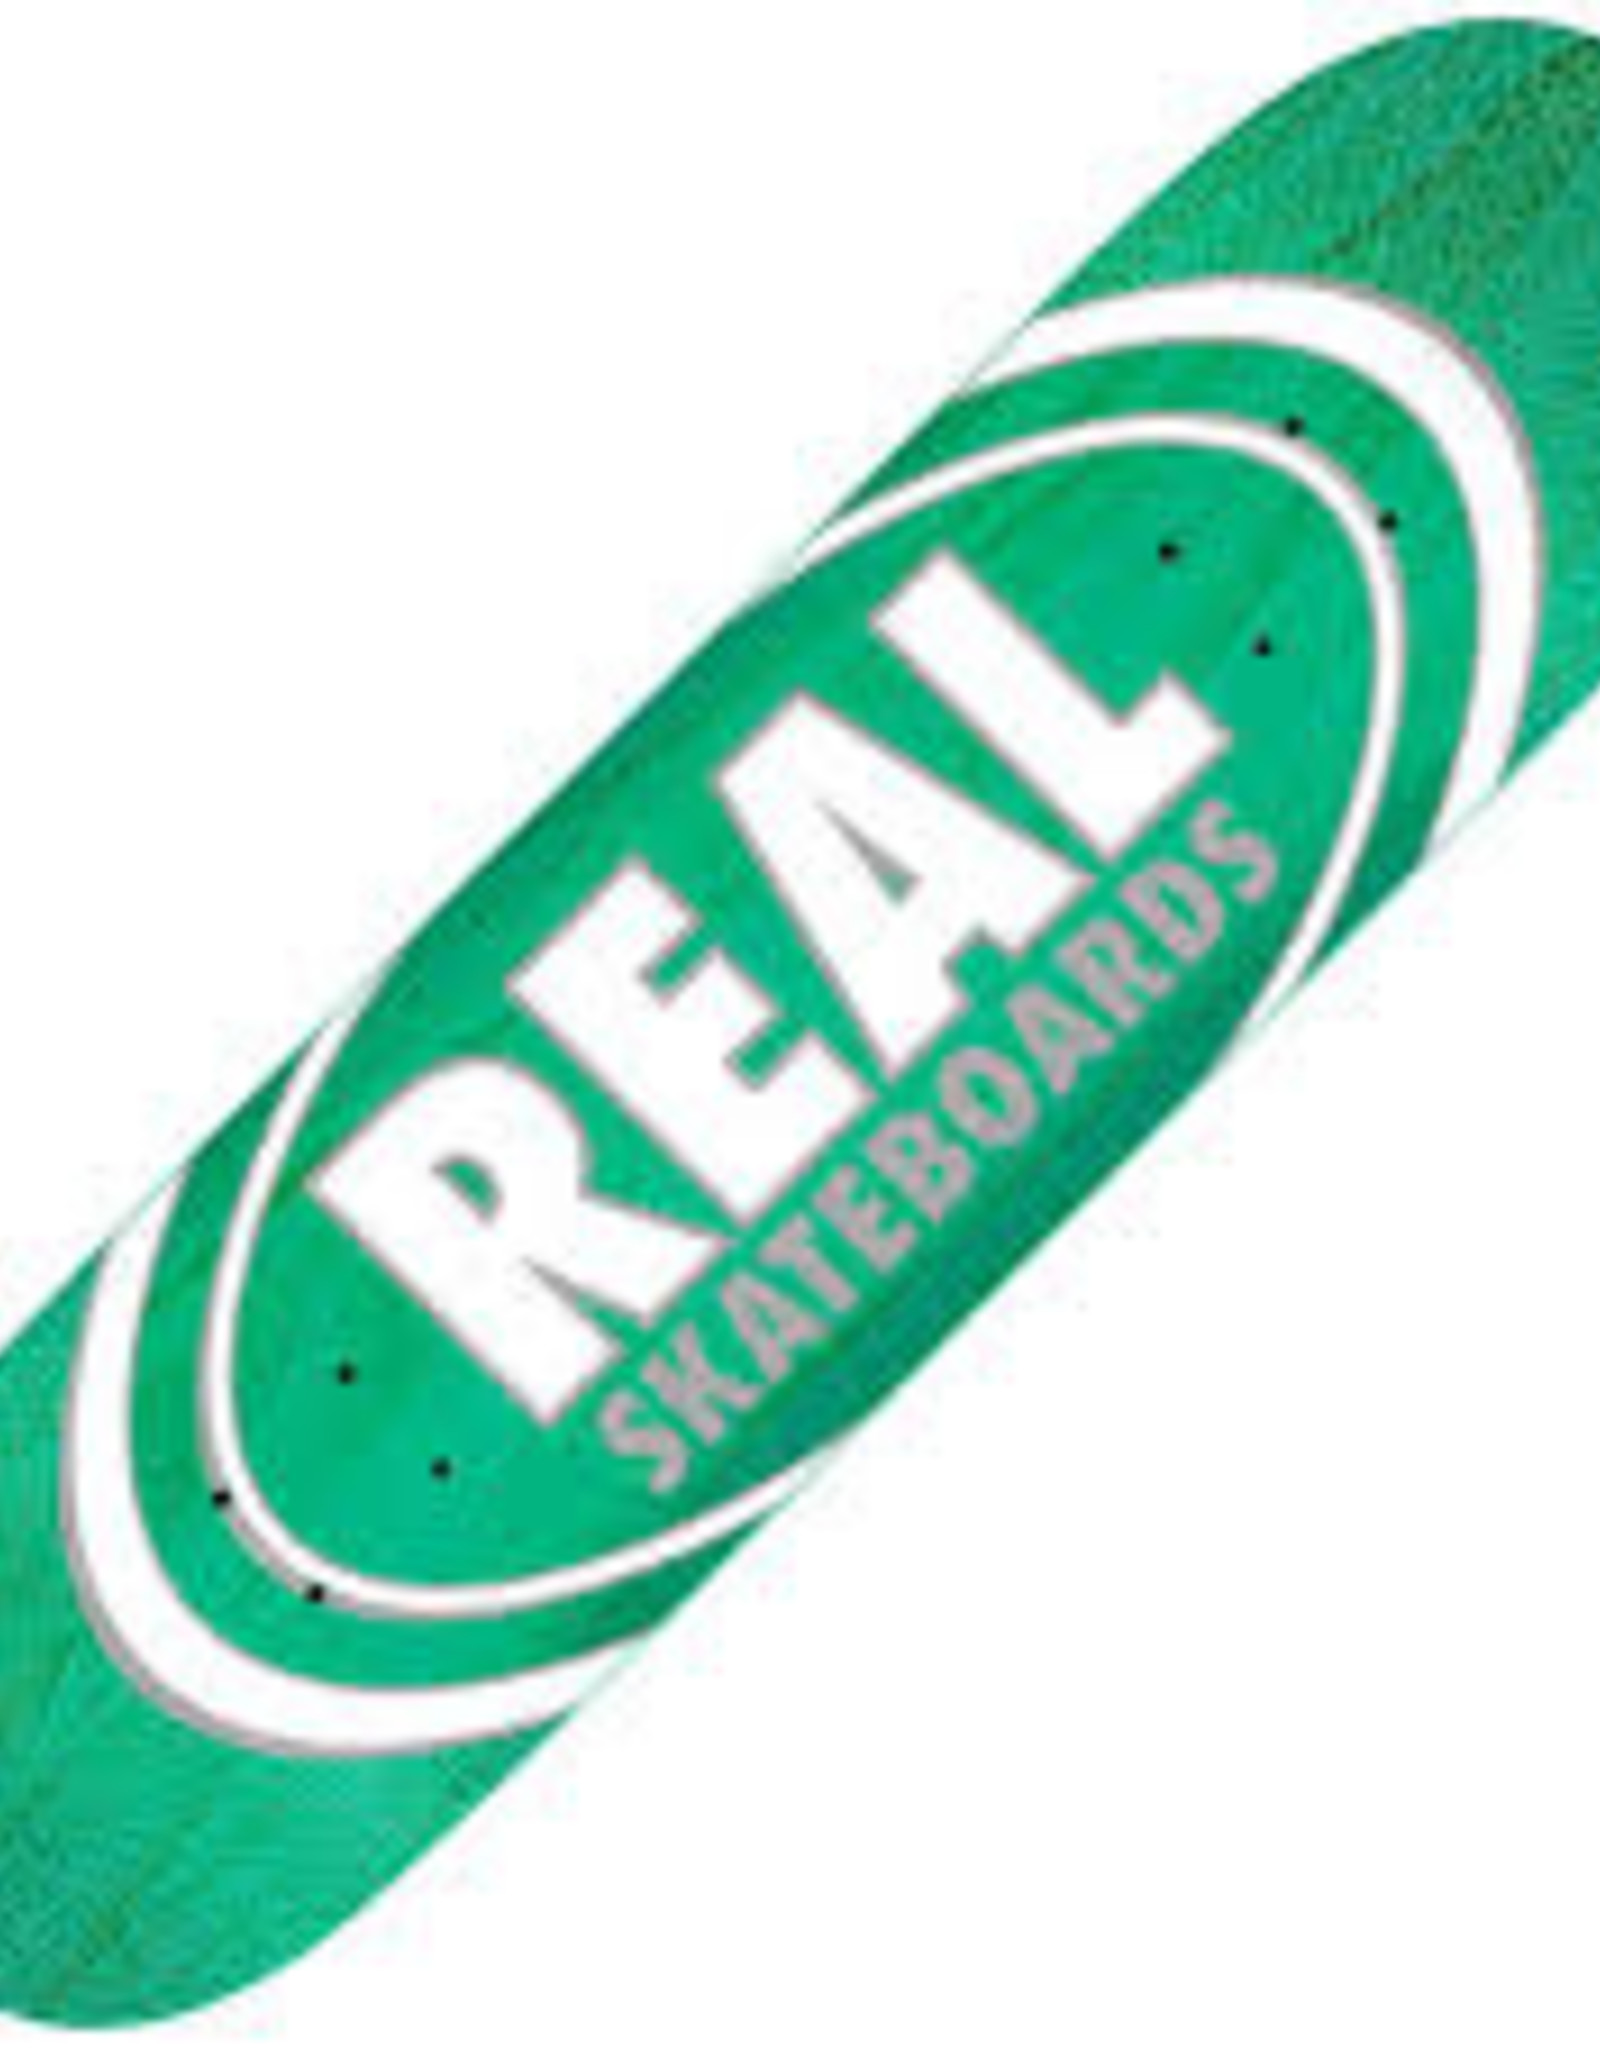 REAL REAL OVAL PATTERNS TEAM SERIES 8.38